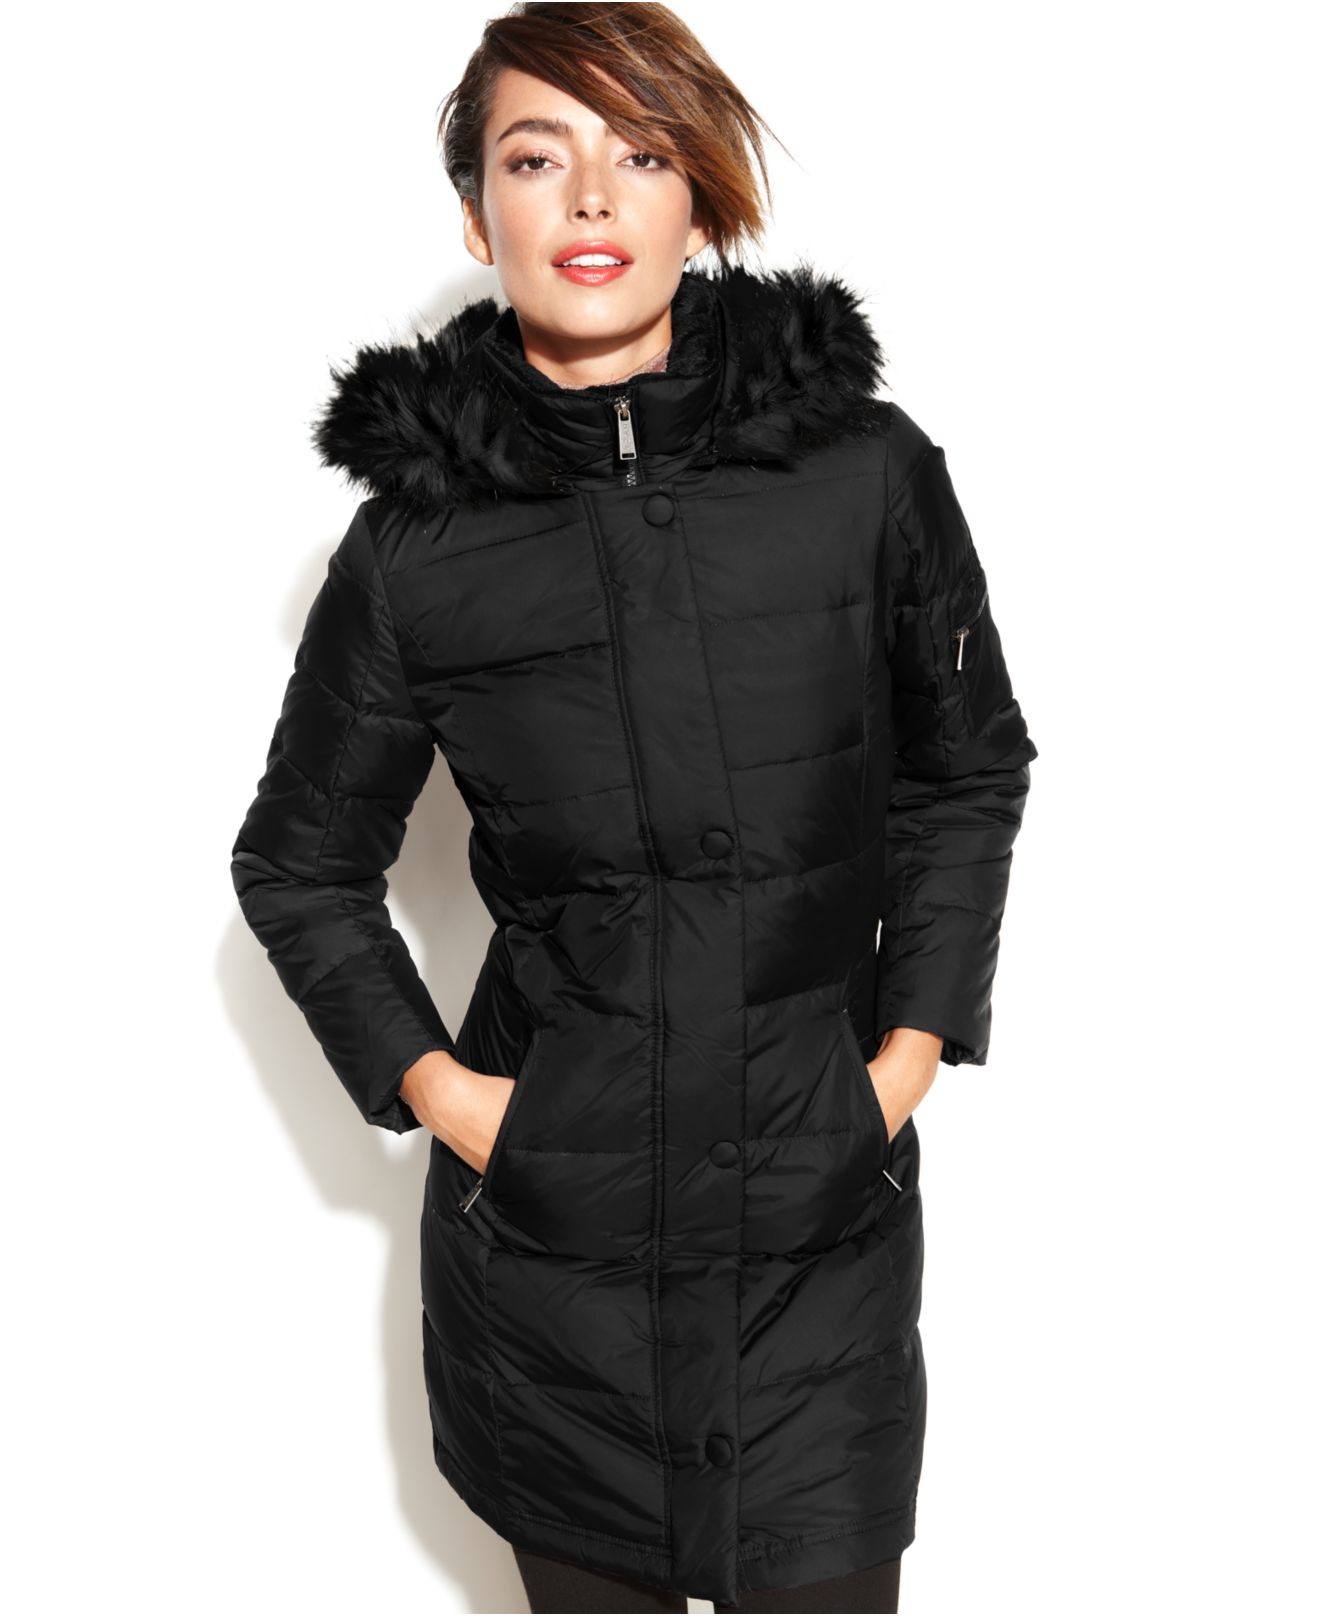 Down Coat Petite - Black Coat